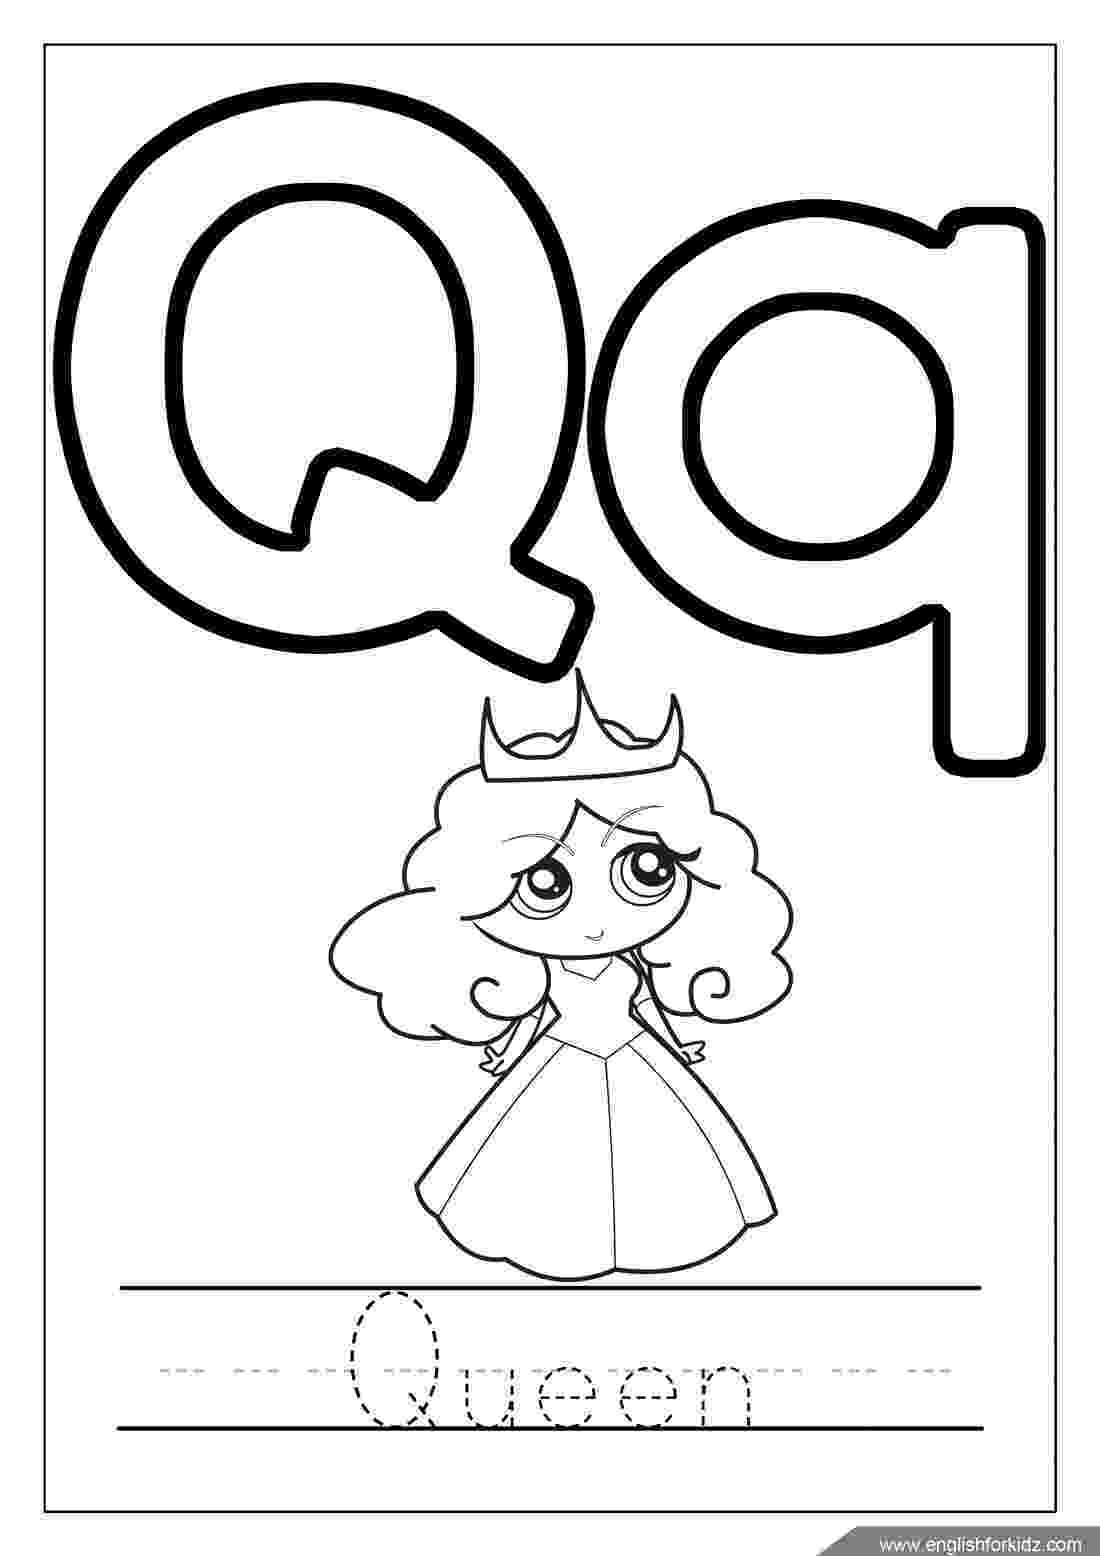 letter q coloring sheet my a to z coloring book letter q coloring page alphabet q letter coloring sheet